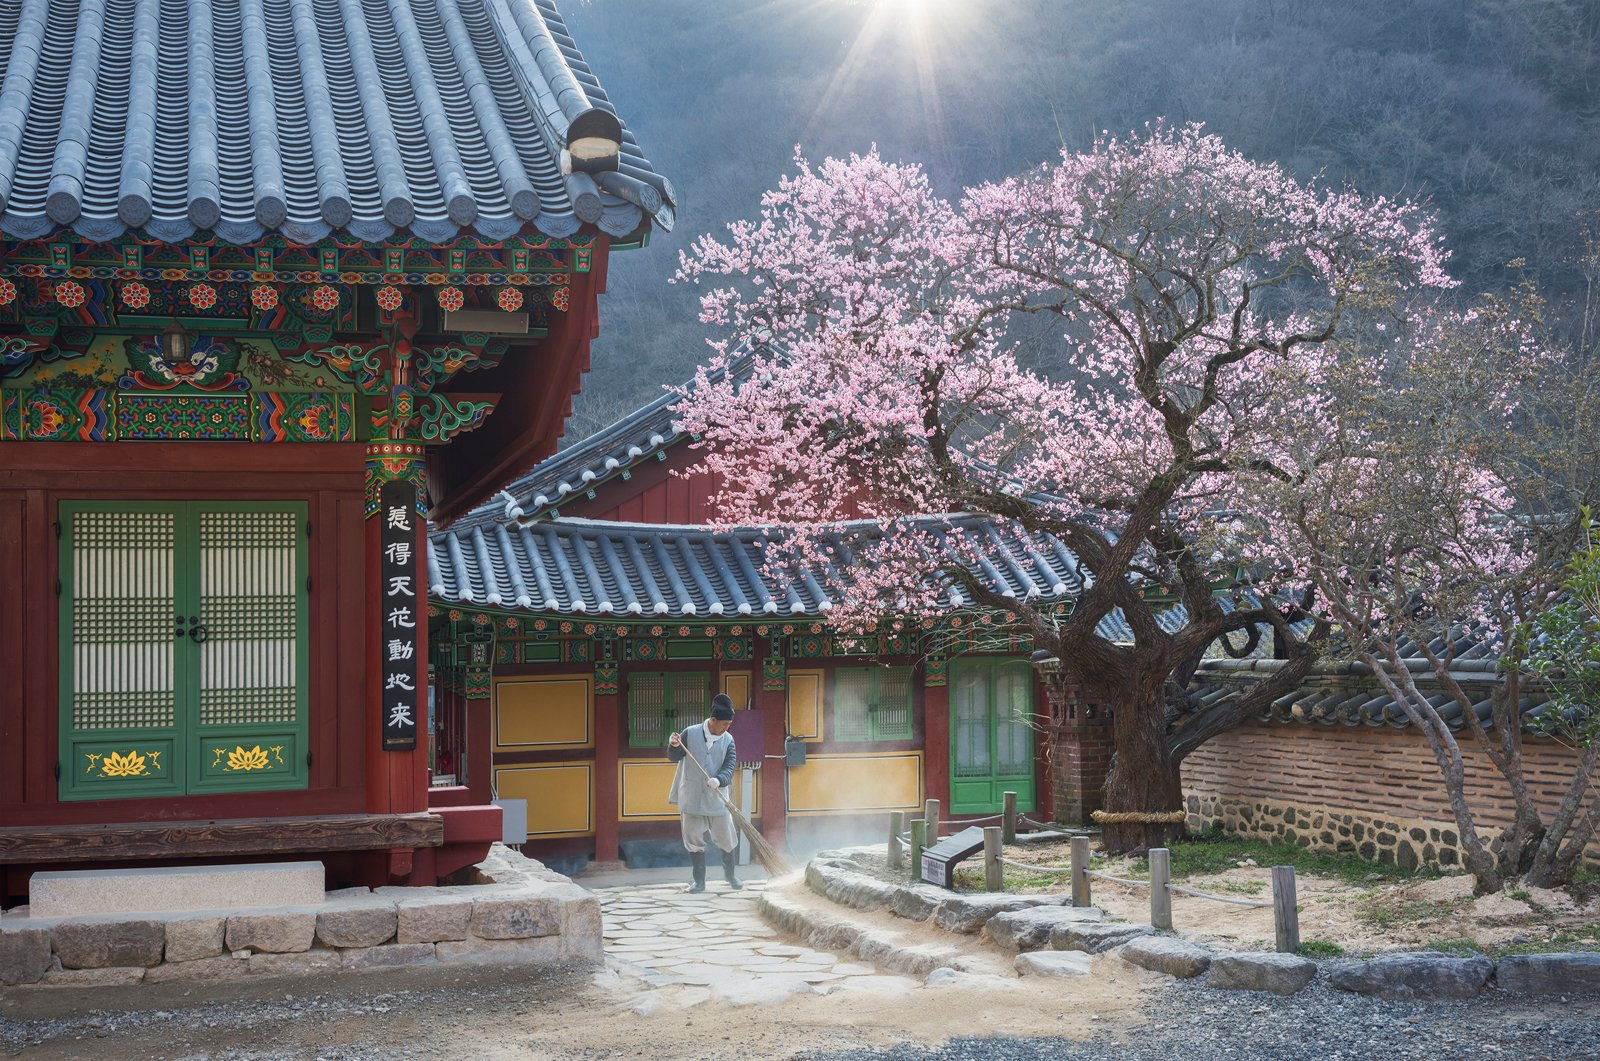 buddhism, working, culture, spring, blossom, 류재윤